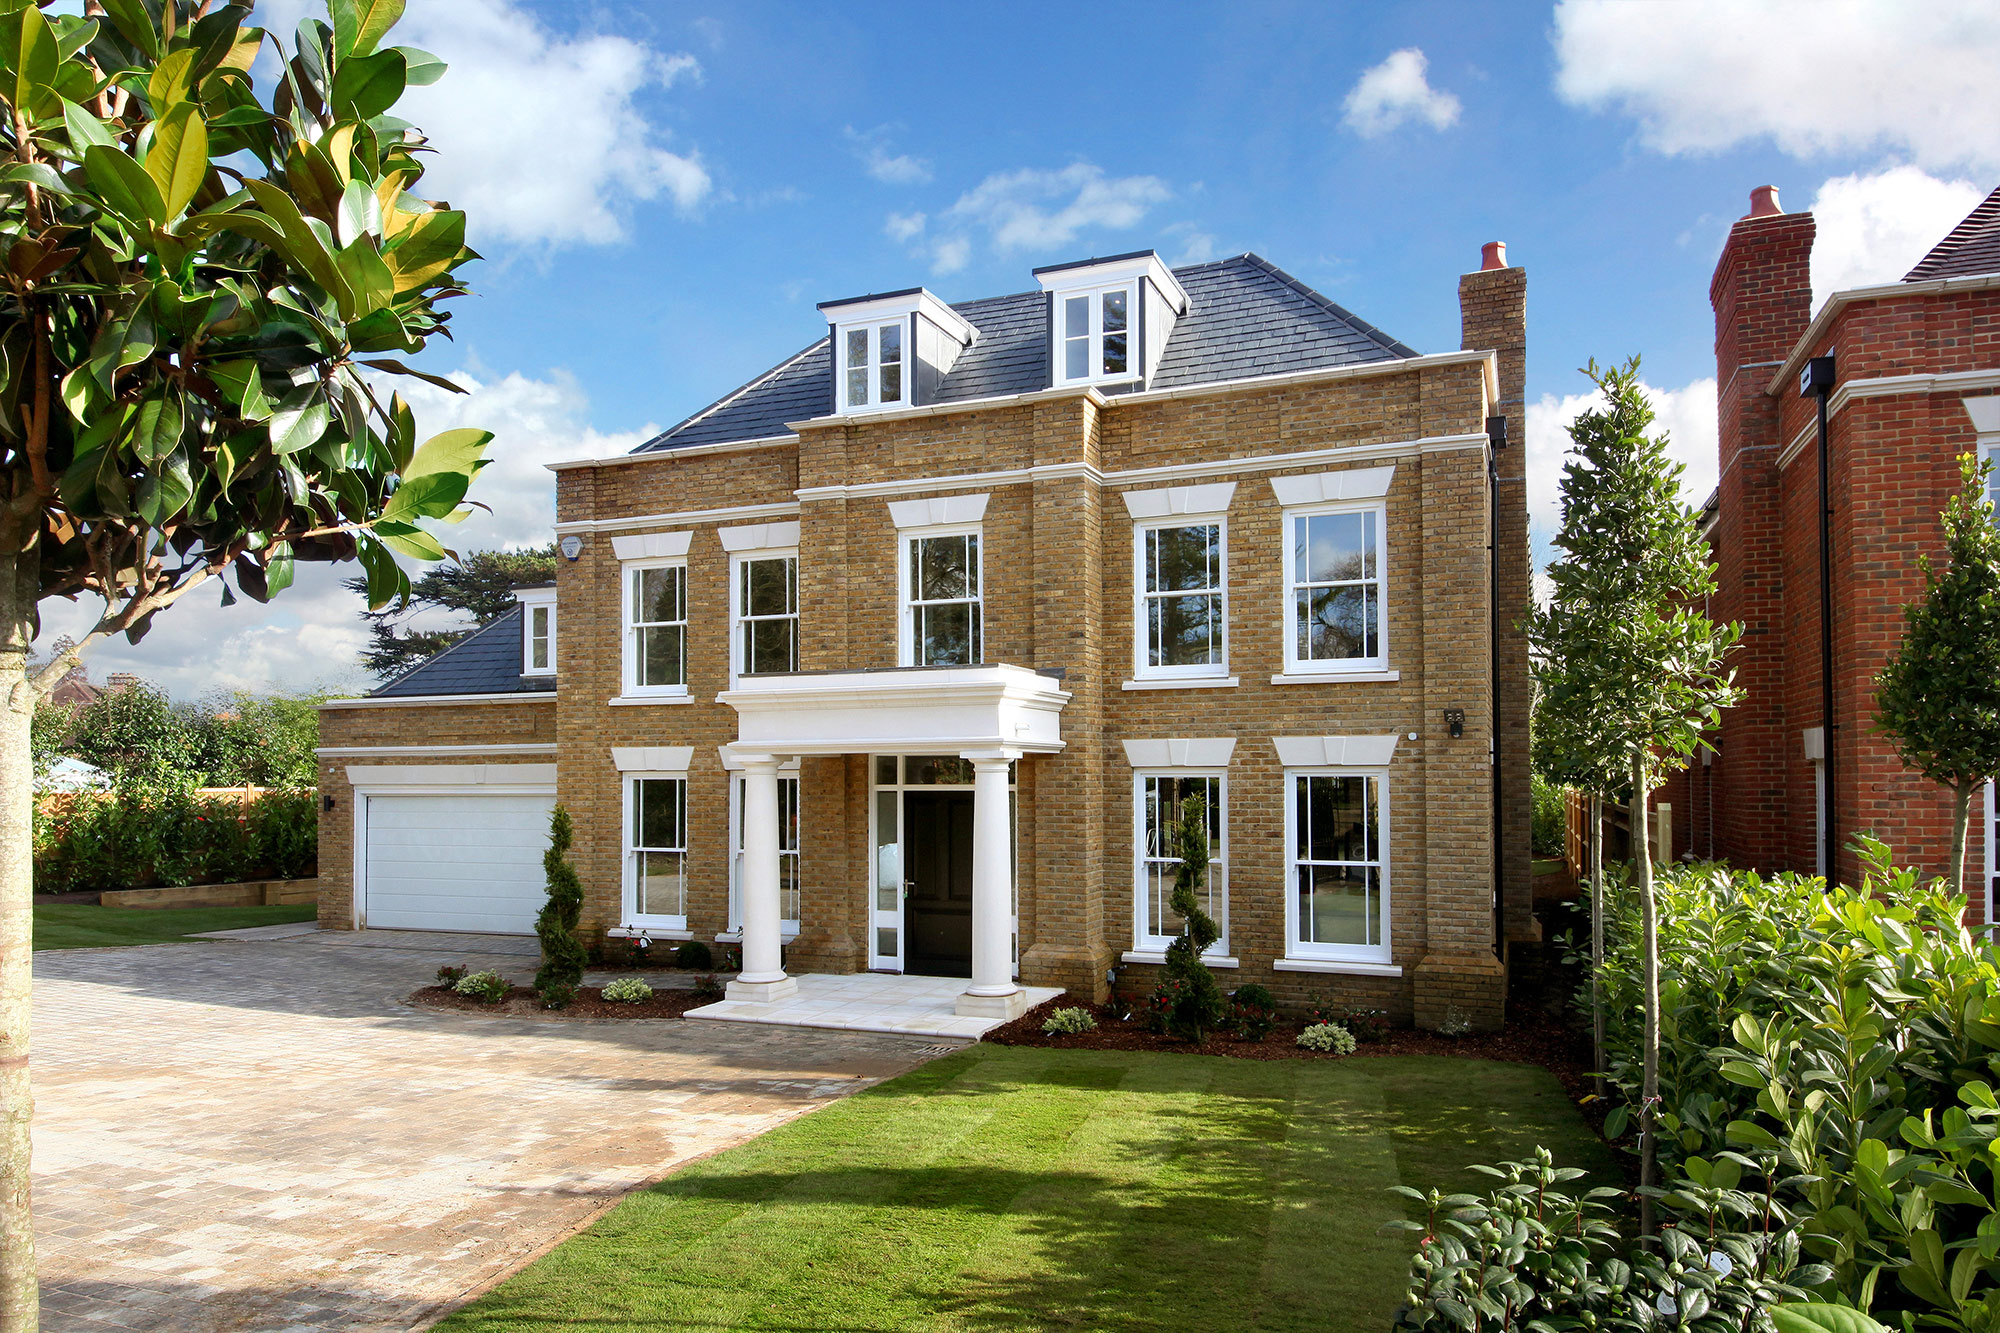 New Homes For Sale In Surrey Uk